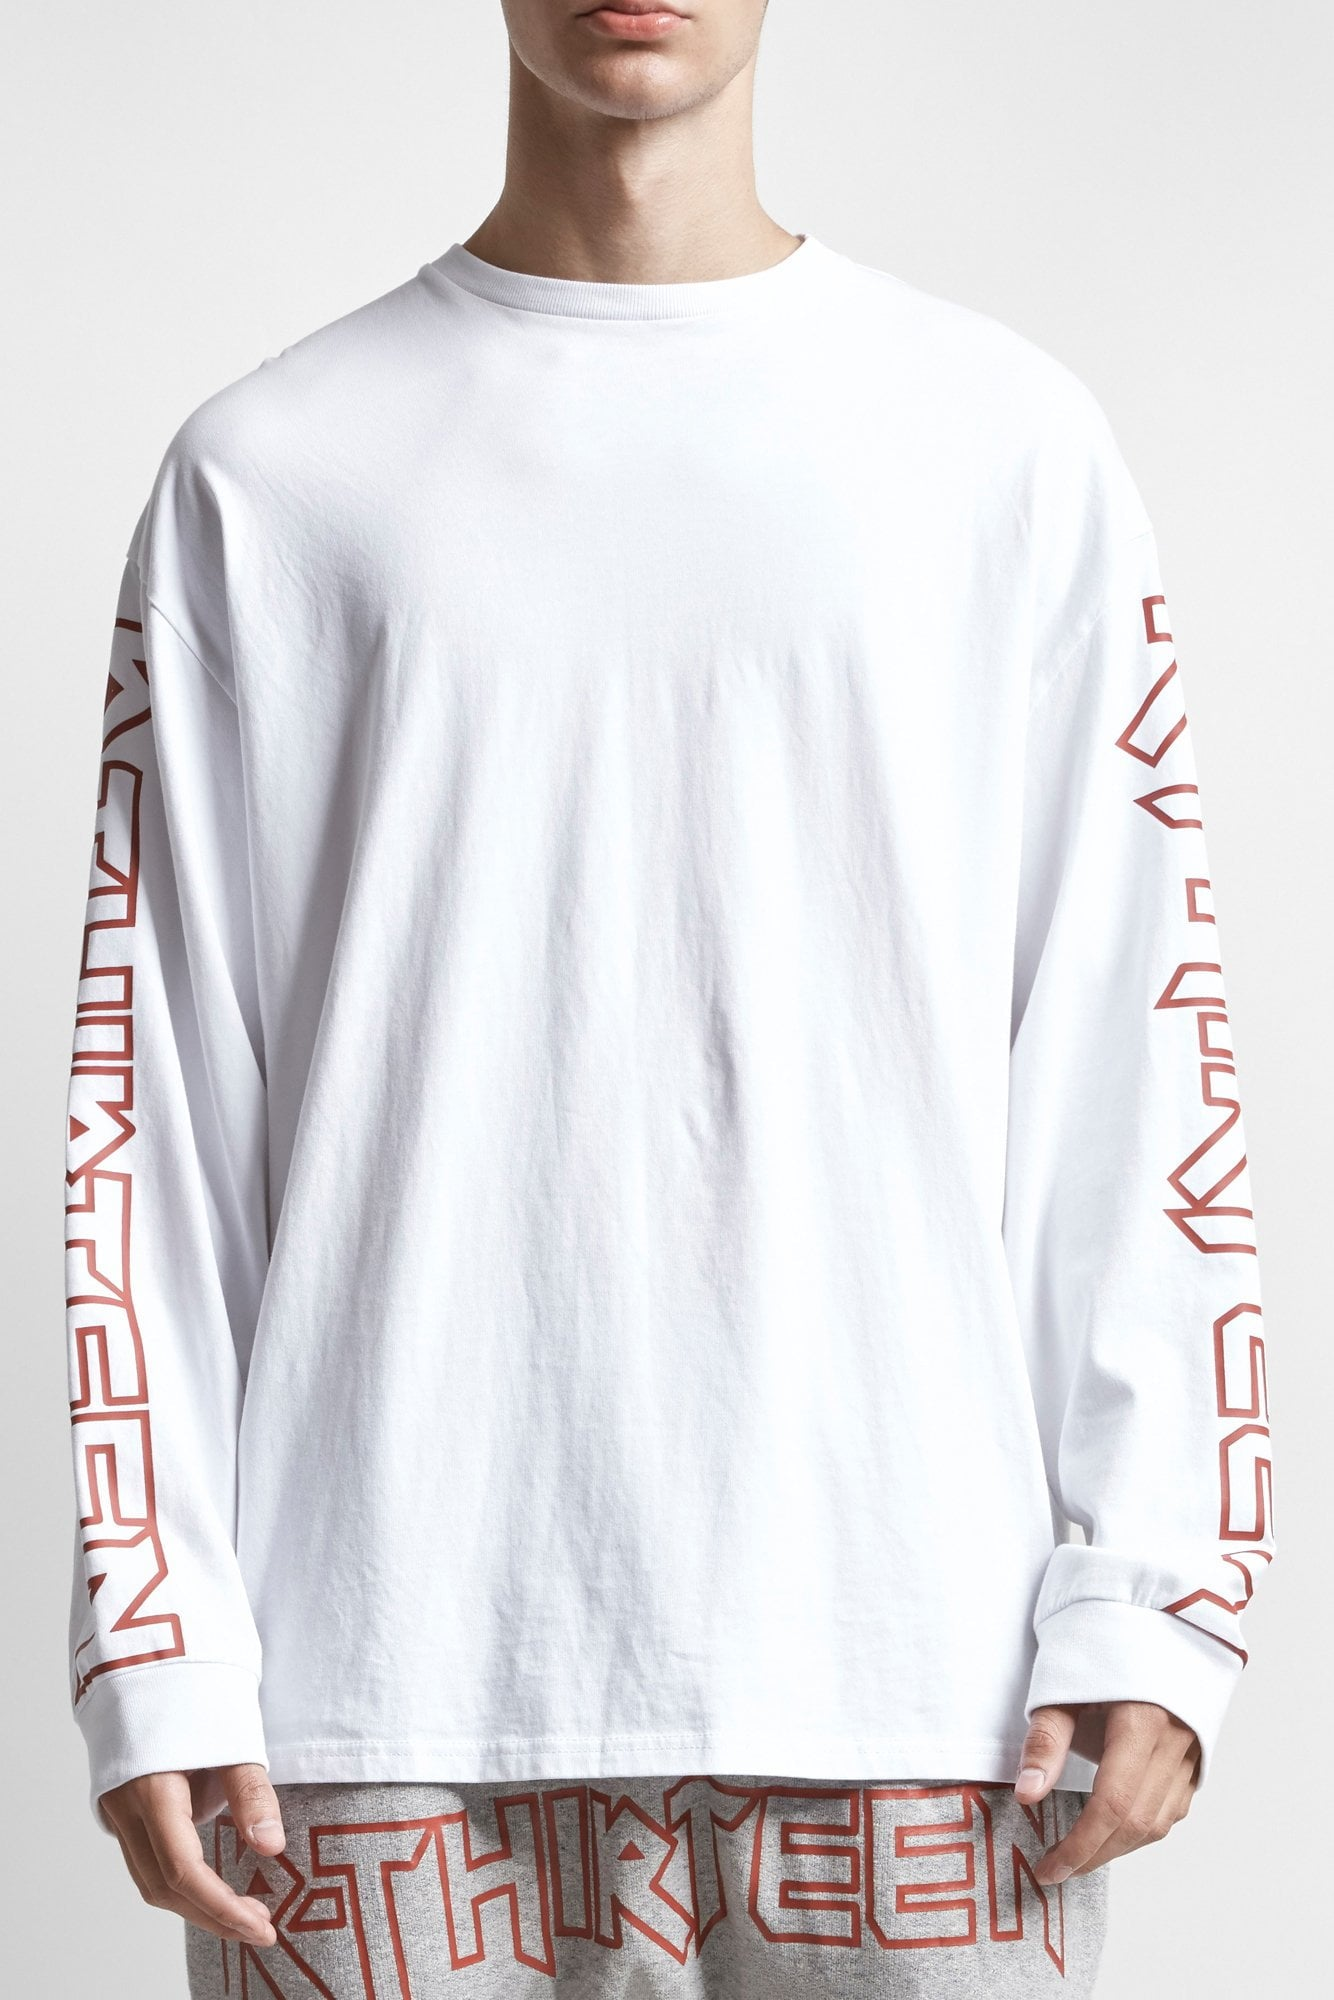 RThirteen Long Sleeve T - White